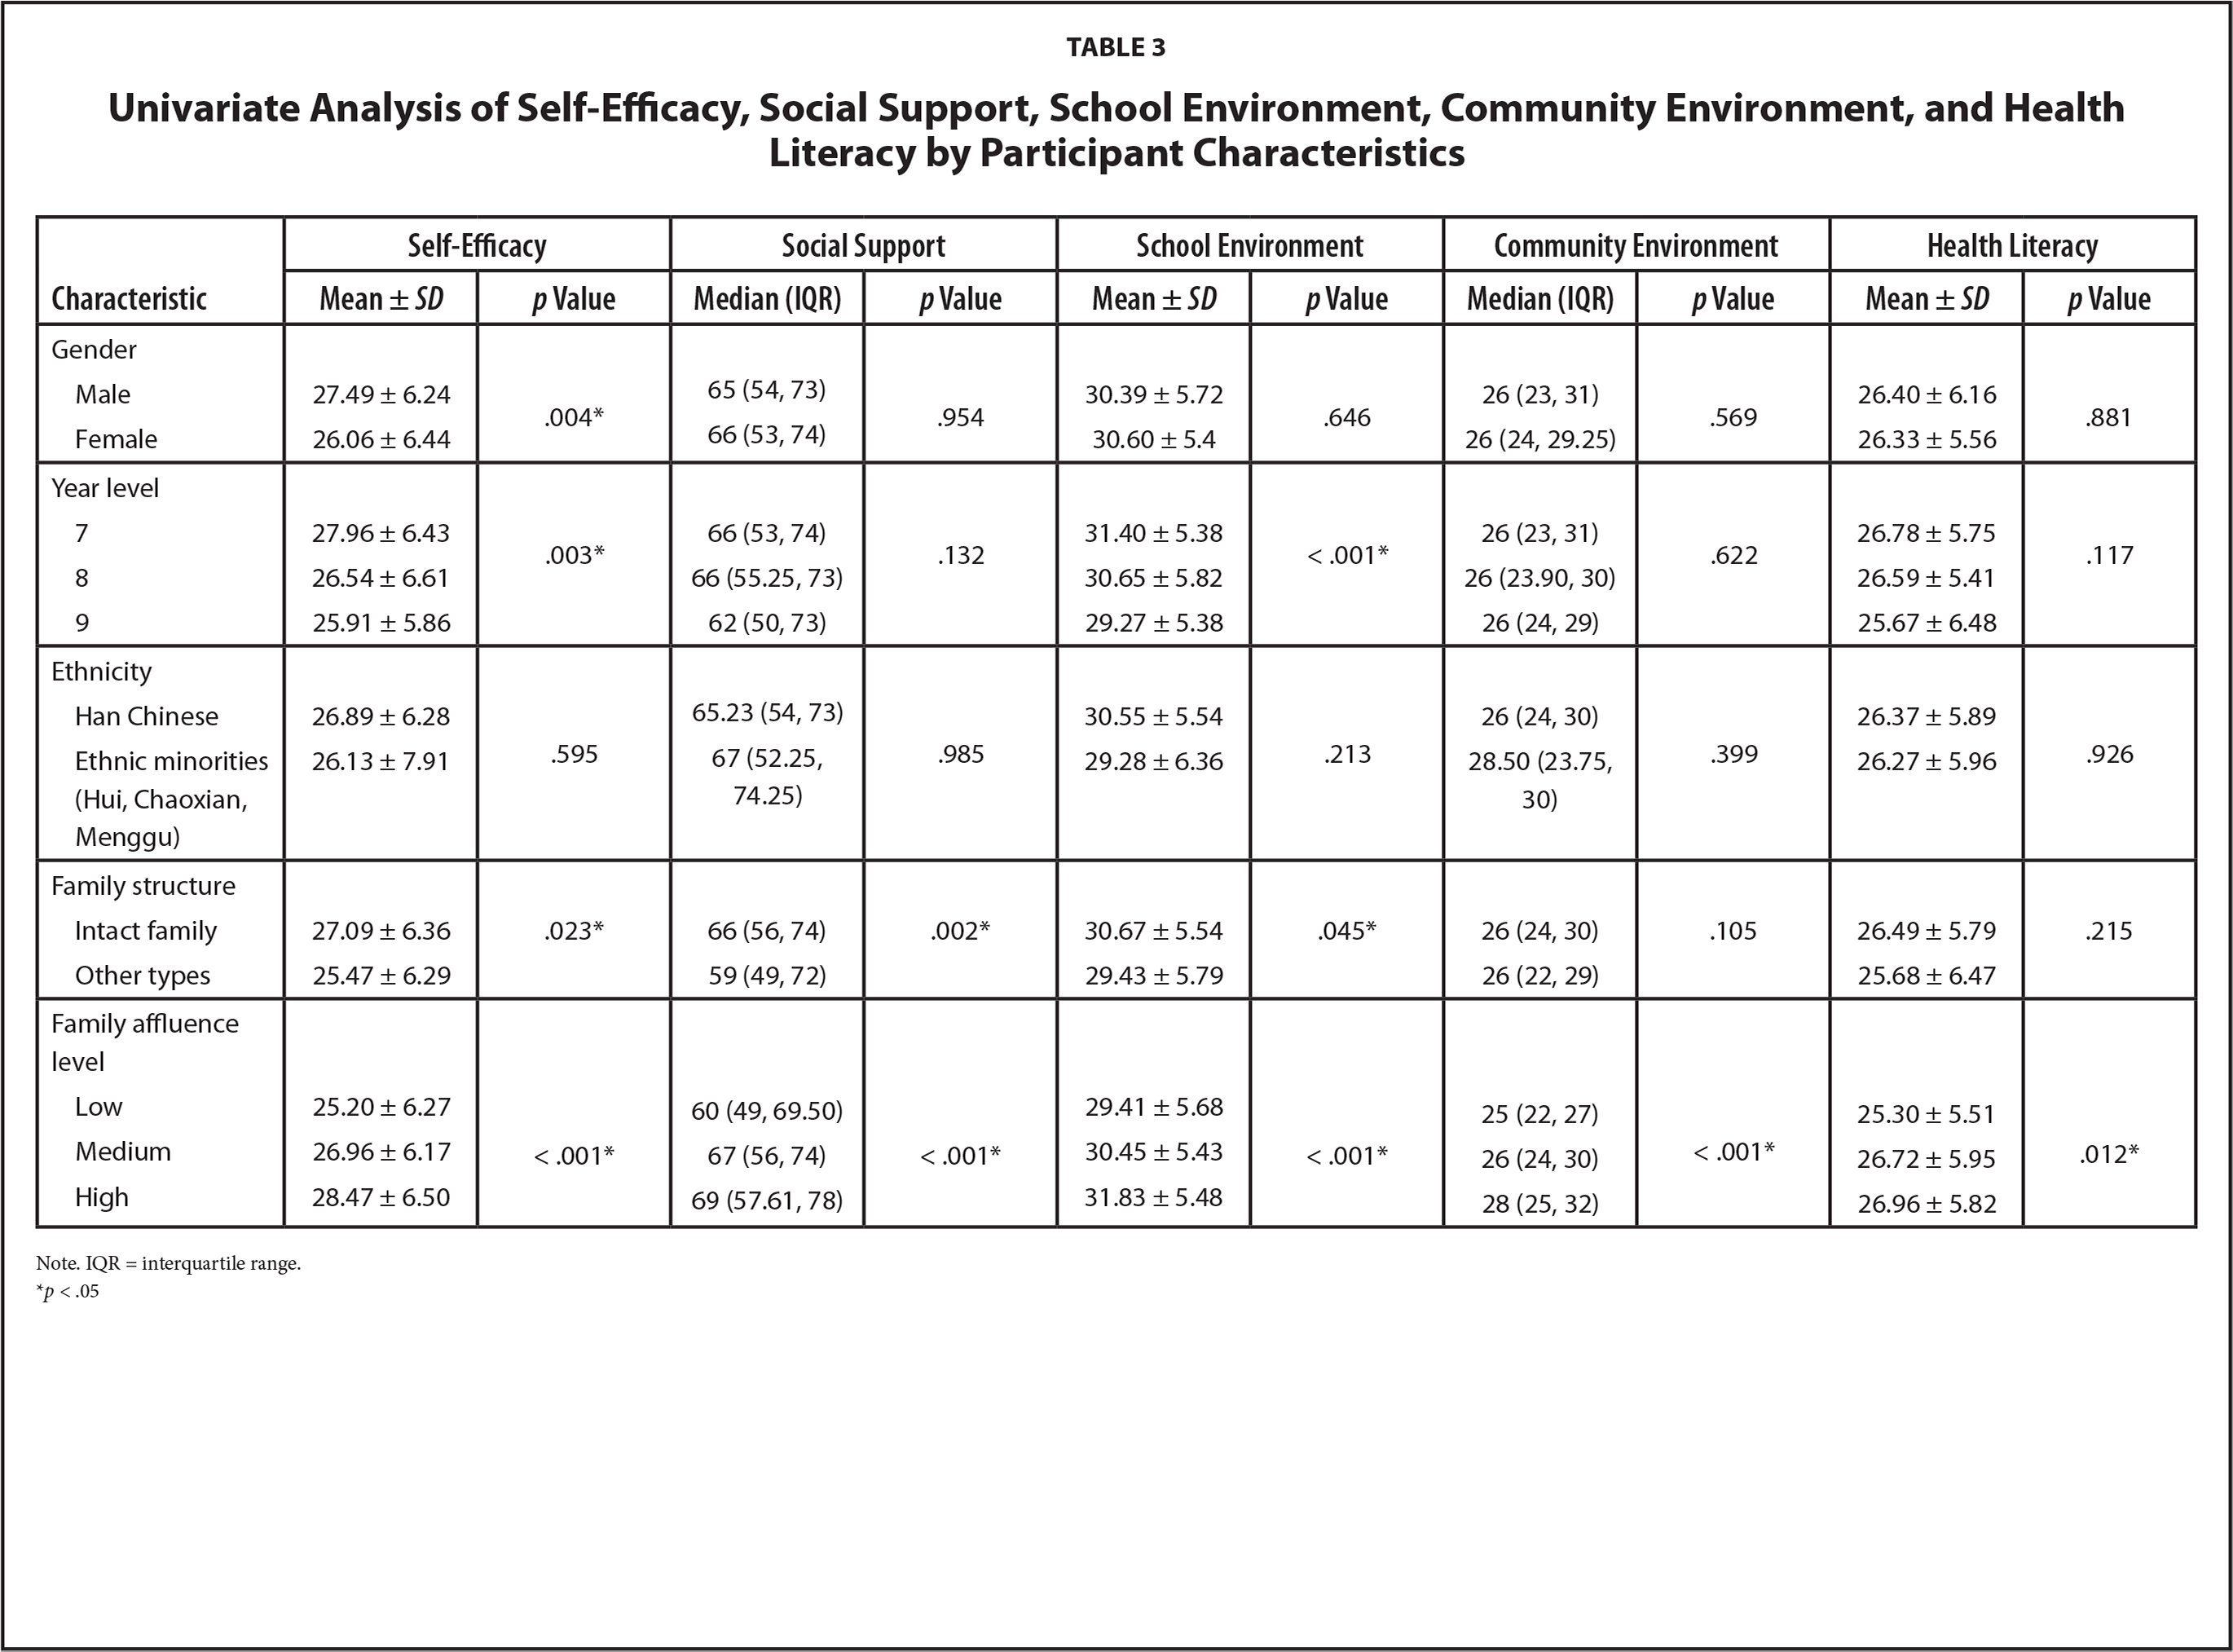 Univariate Analysis of Self-Efficacy, Social Support, School Environment, Community Environment, and Health Literacy by Participant Characteristics